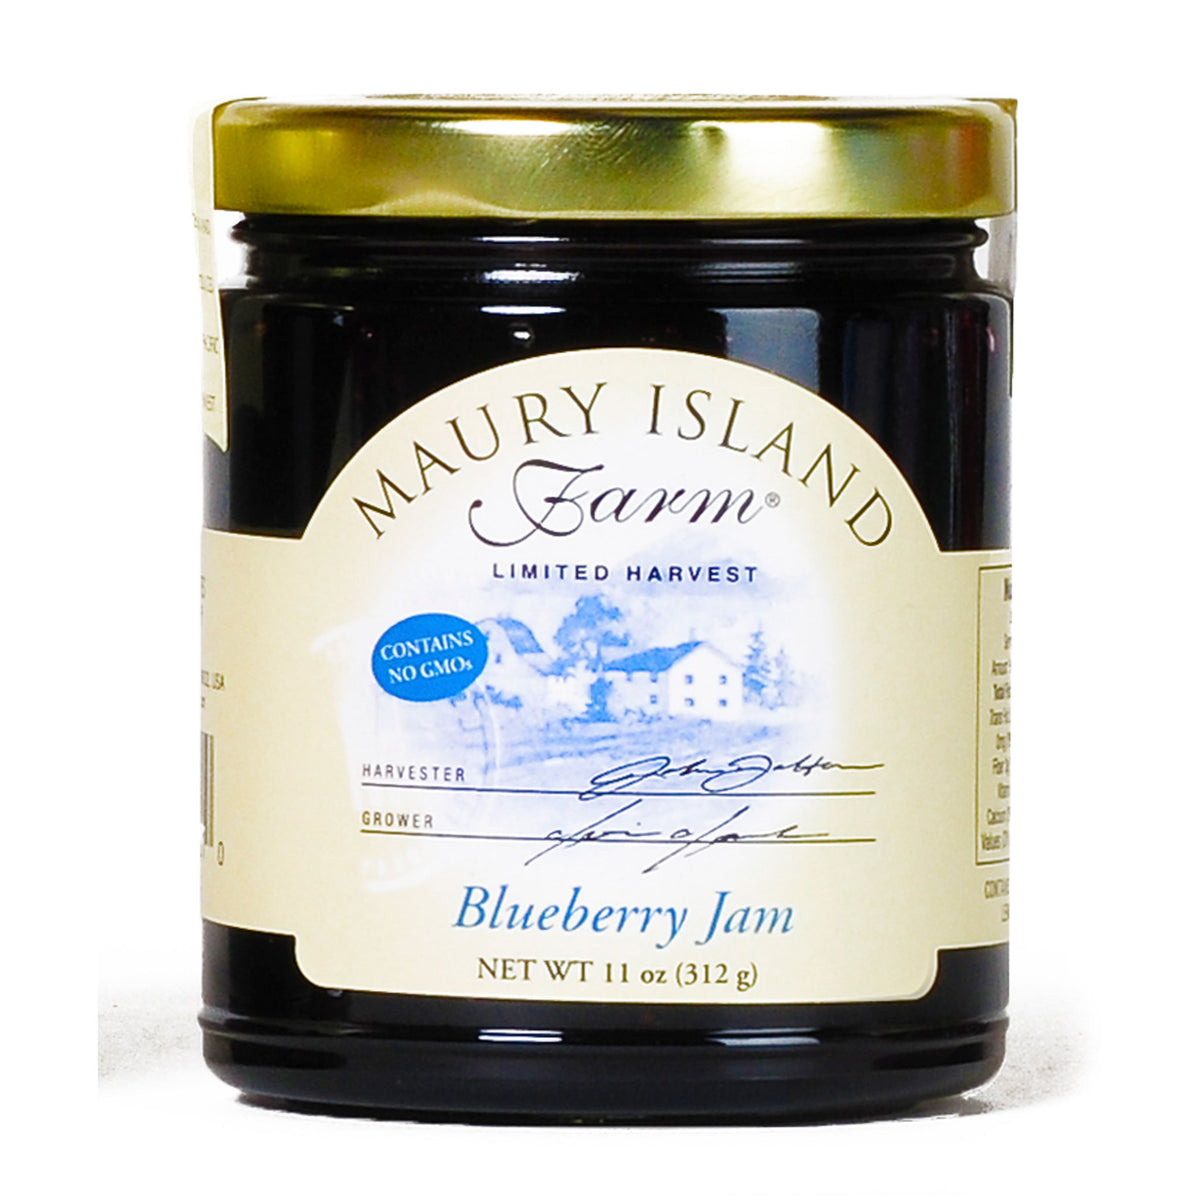 Maury Island Farm Limited Harvest GMO-Free Blueberry Jam 11-Ounce Glass Jar